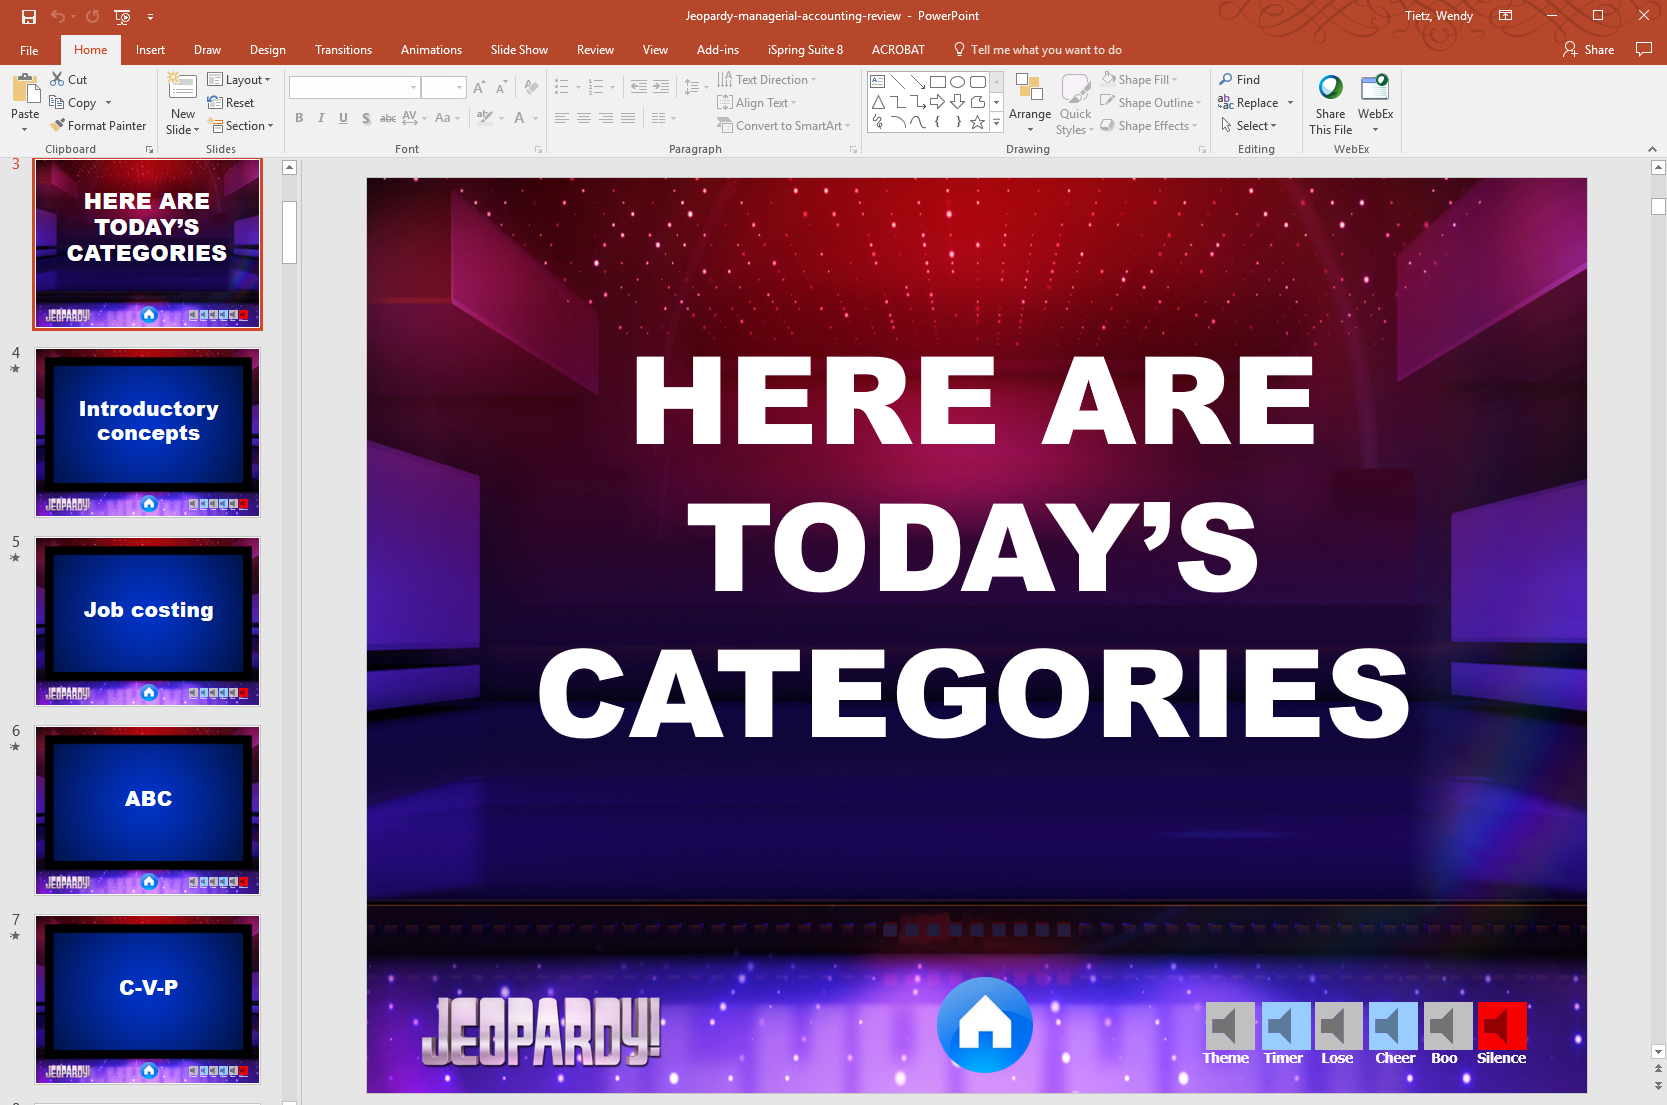 Introductory managerial accounting Jeopardy game for end-of